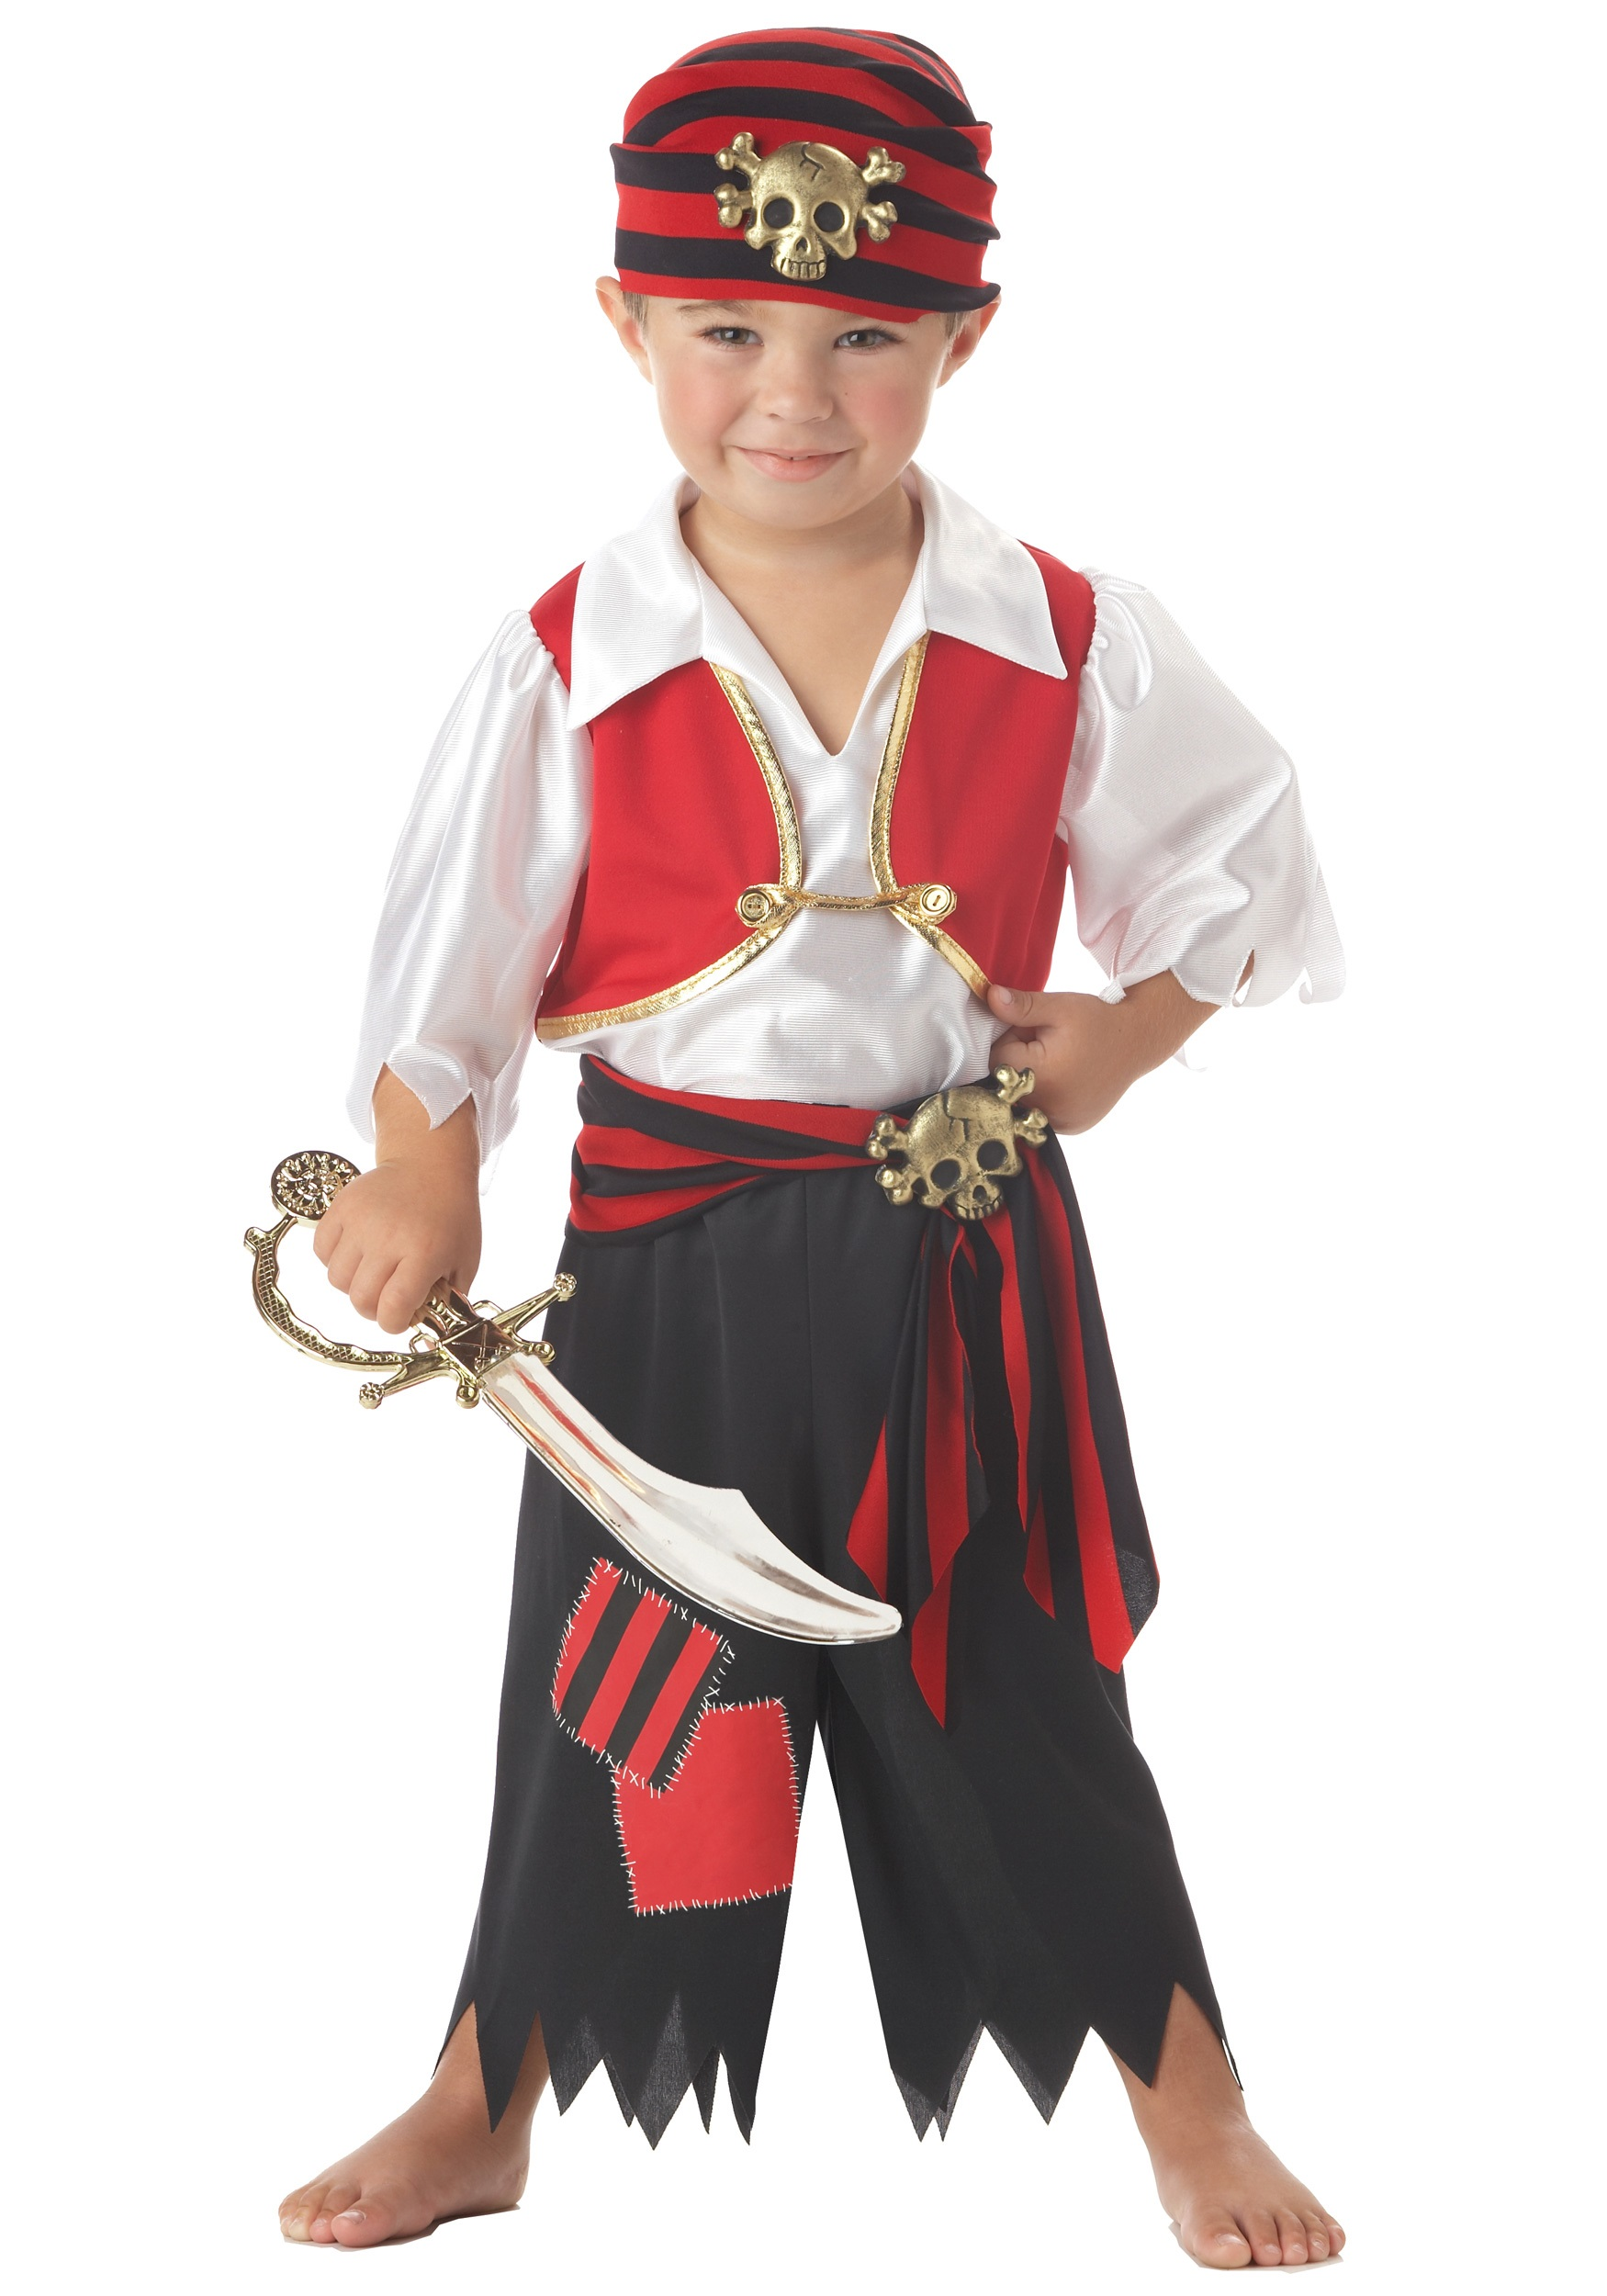 Toddler Ahoy Matey Pirate Costume